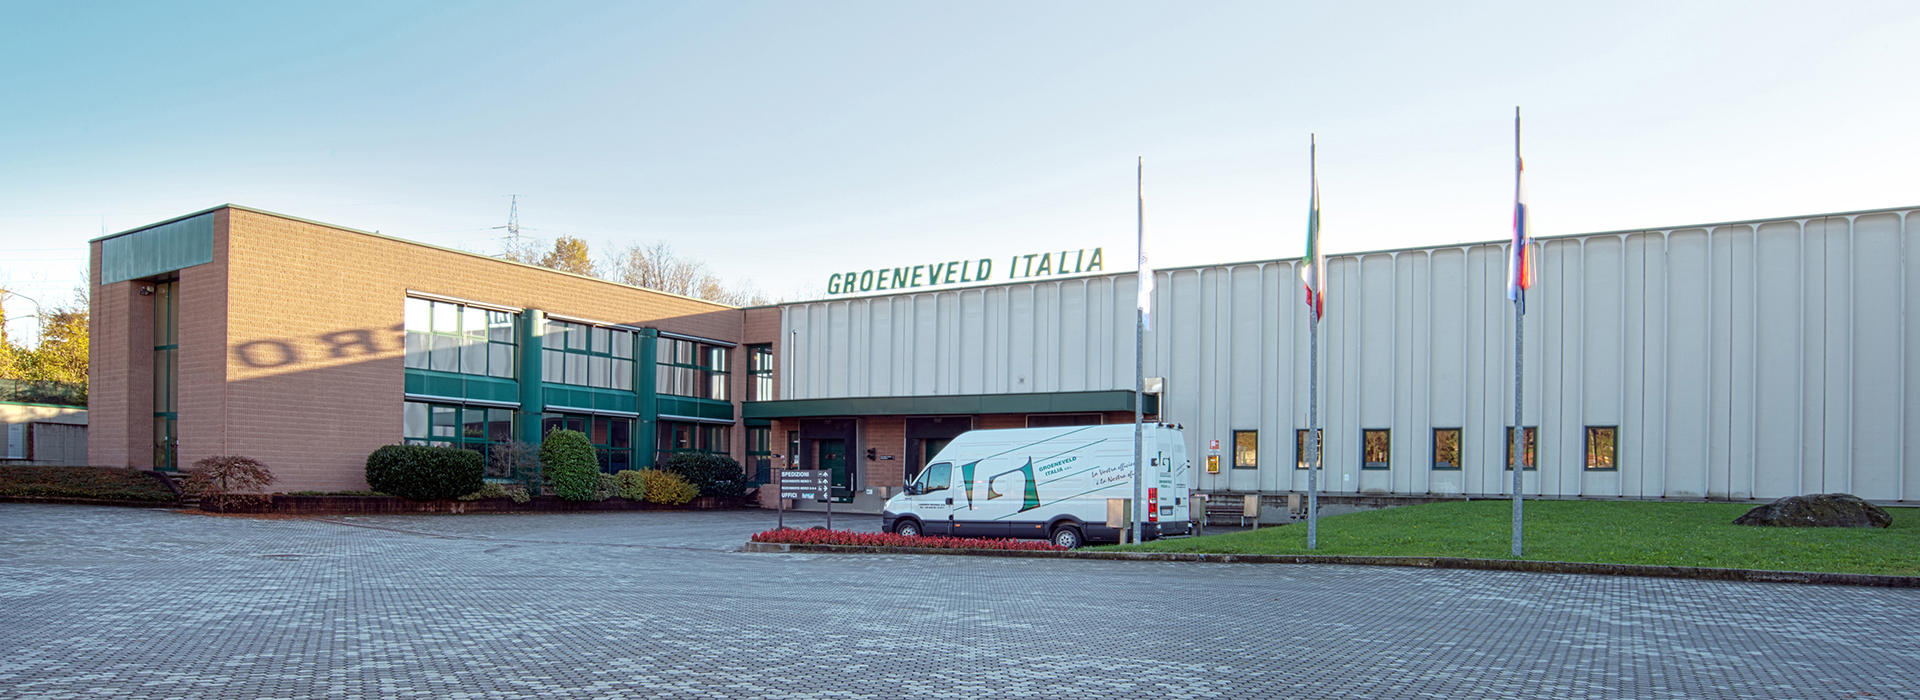 Groeneveld Group main assembly plant in Cassago Brianza, near Lake Como.